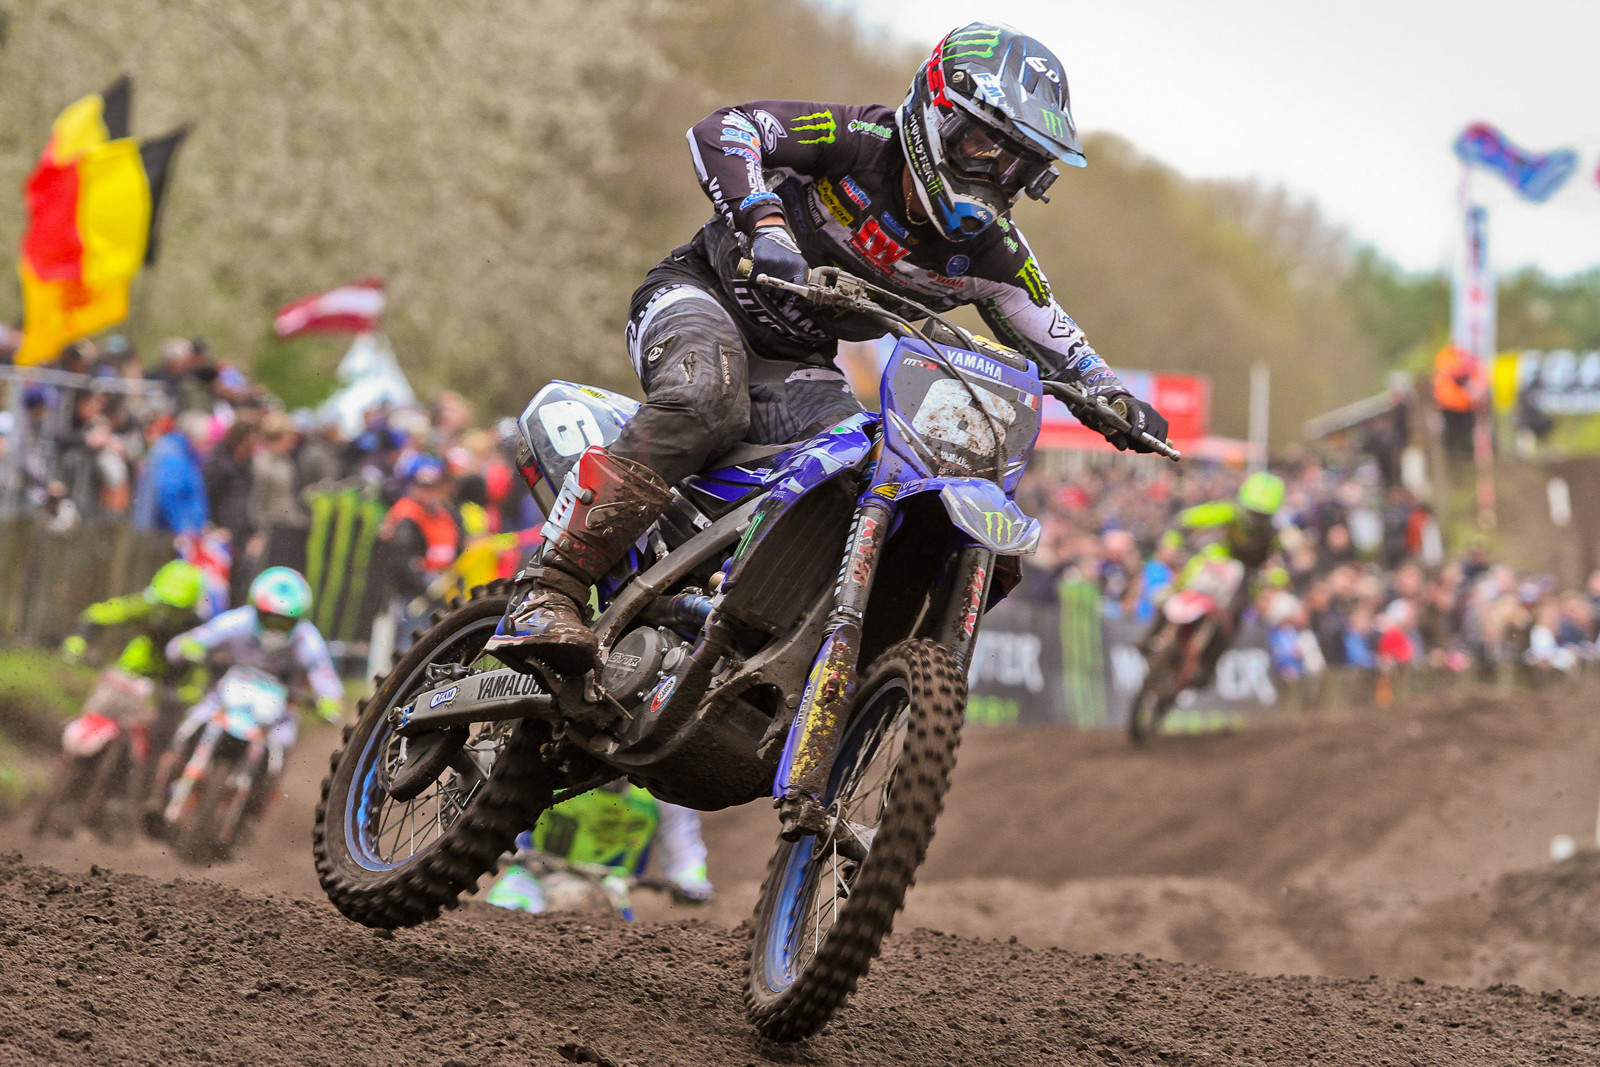 Benoit Paturel - Photo Blast: 2017 MXGP of Valkenswaard - Motocross Pictures - Vital MX